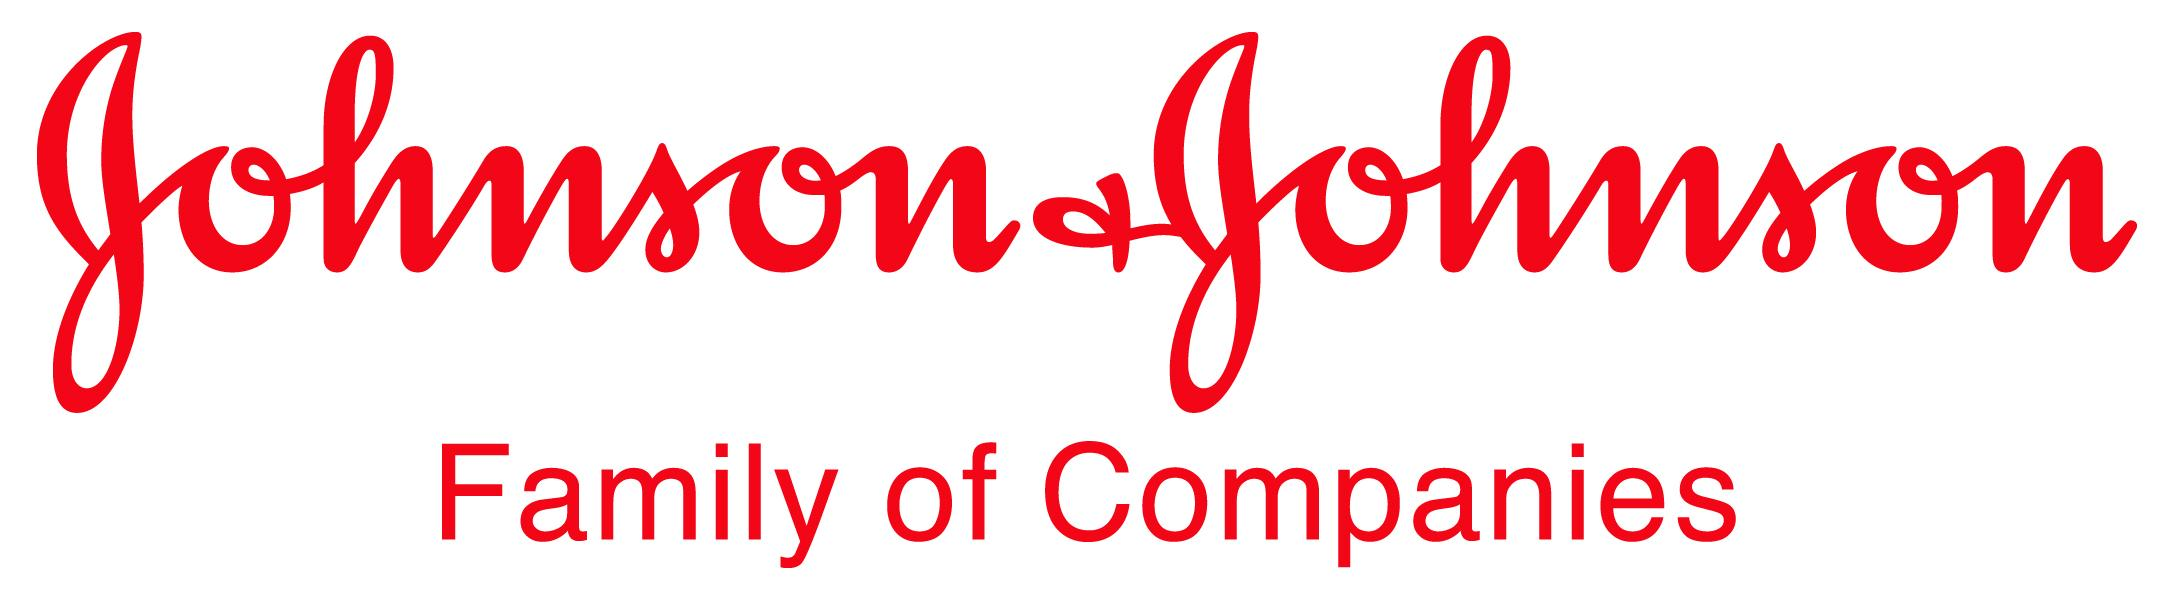 Johnson-and-JohnsonFamC_RGB-logo.jpg